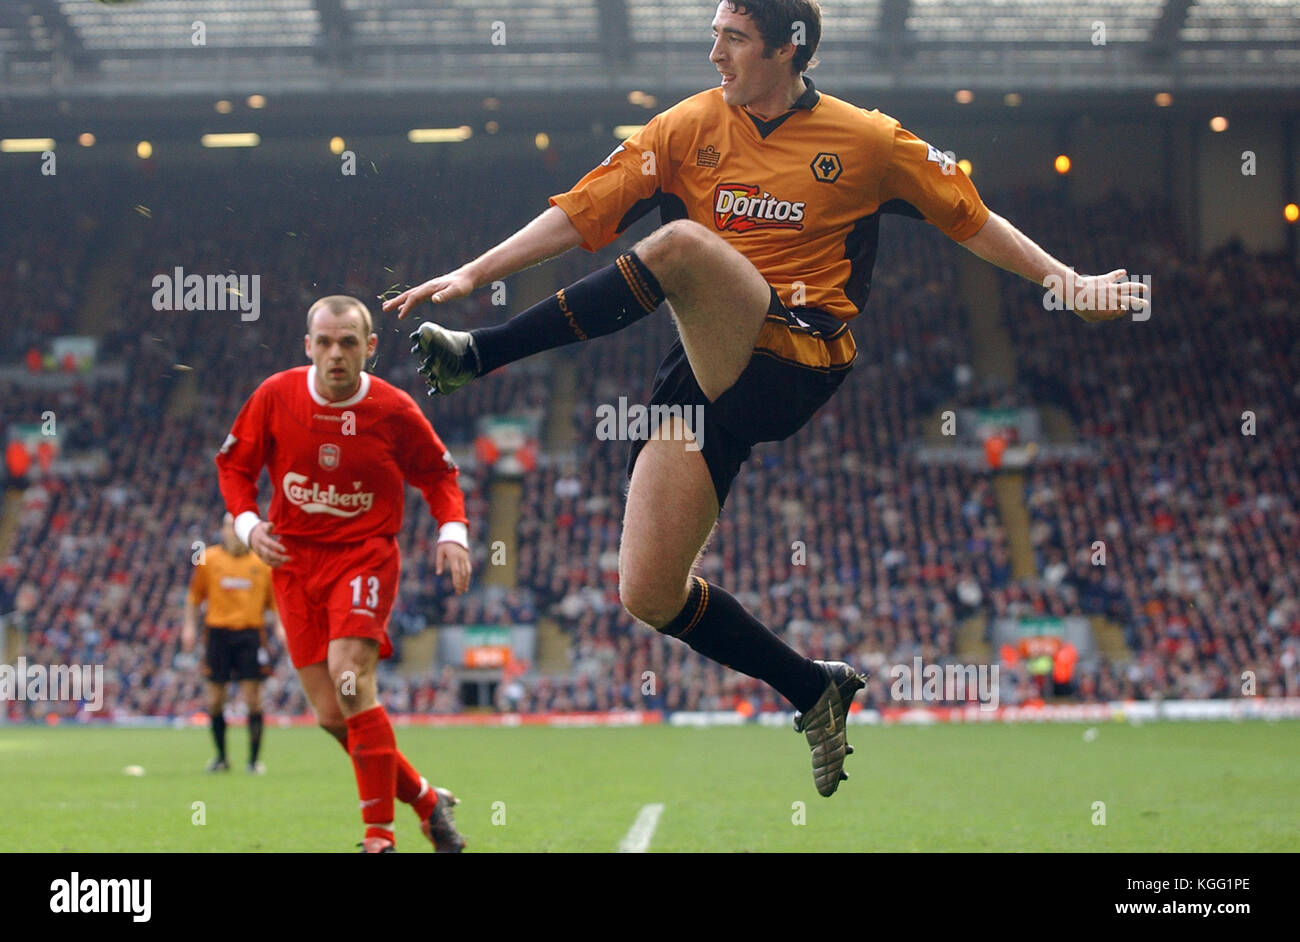 Footballer Mark Kennedy Liverpool v Wolverhampton Wanderers 20 March 2004 - Stock Image